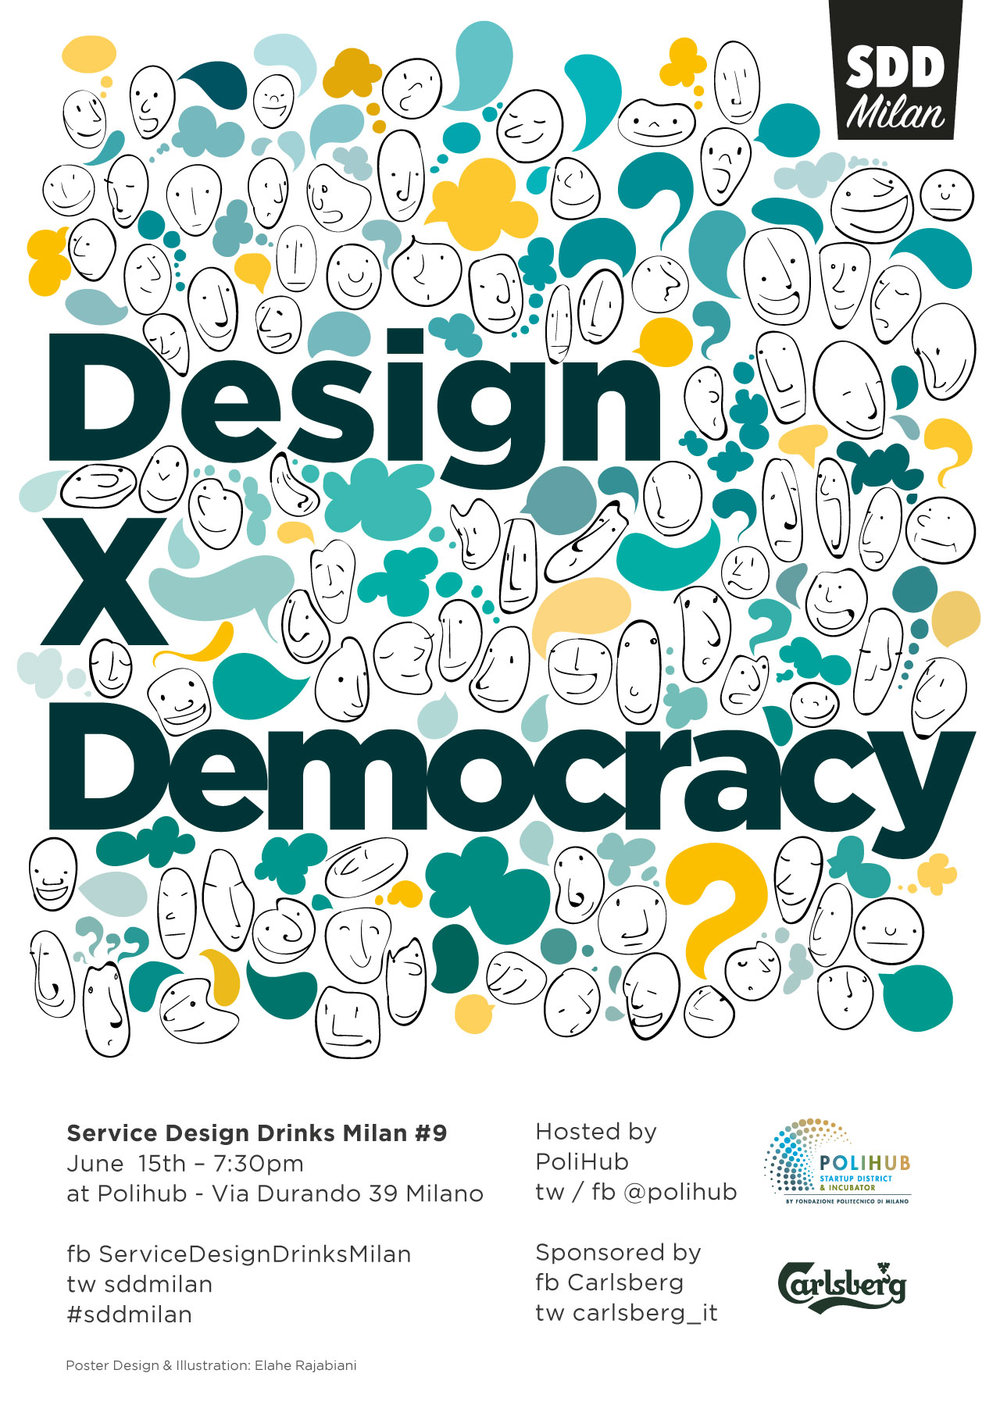 Service Design Drinks Milan #9 - Design X Democracy.jpg